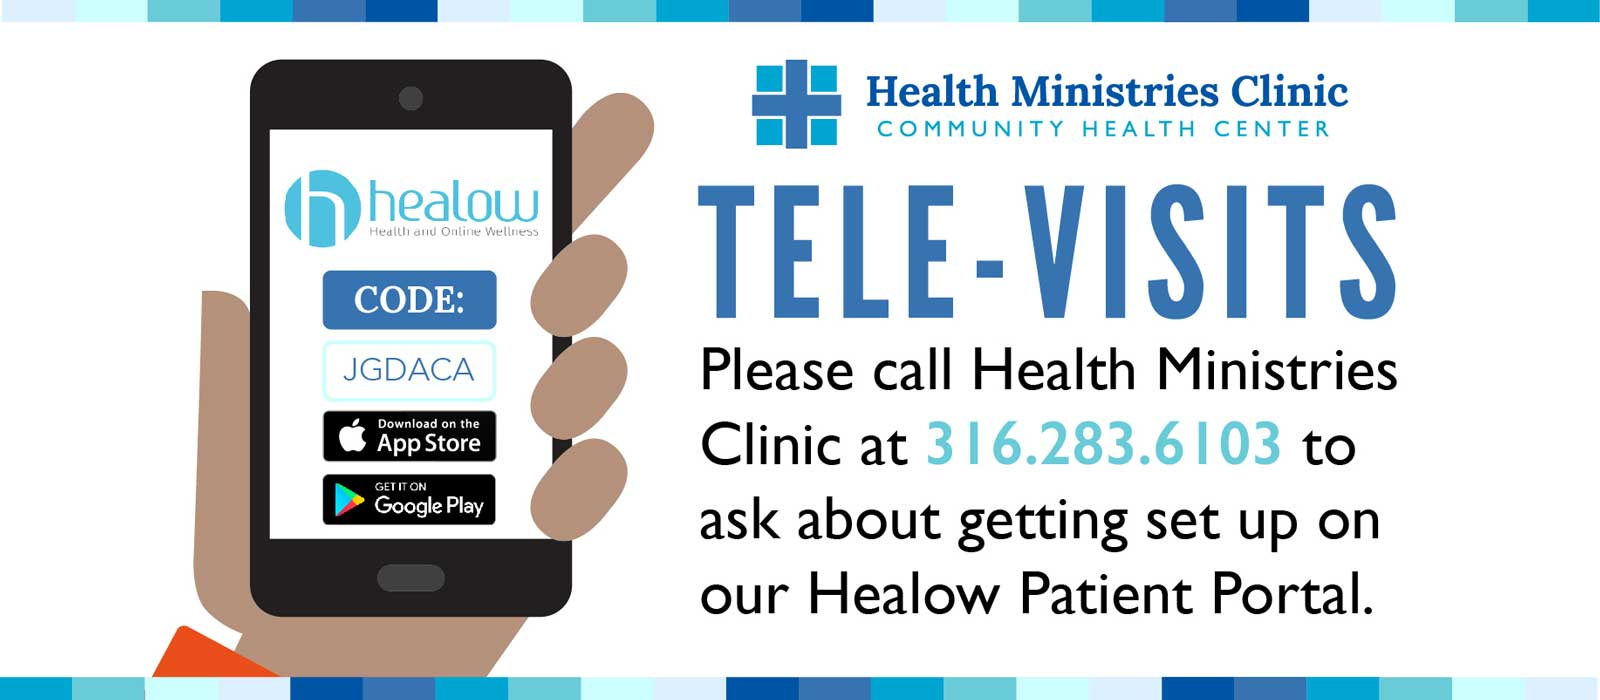 Call HMC to get set up for tele-visits